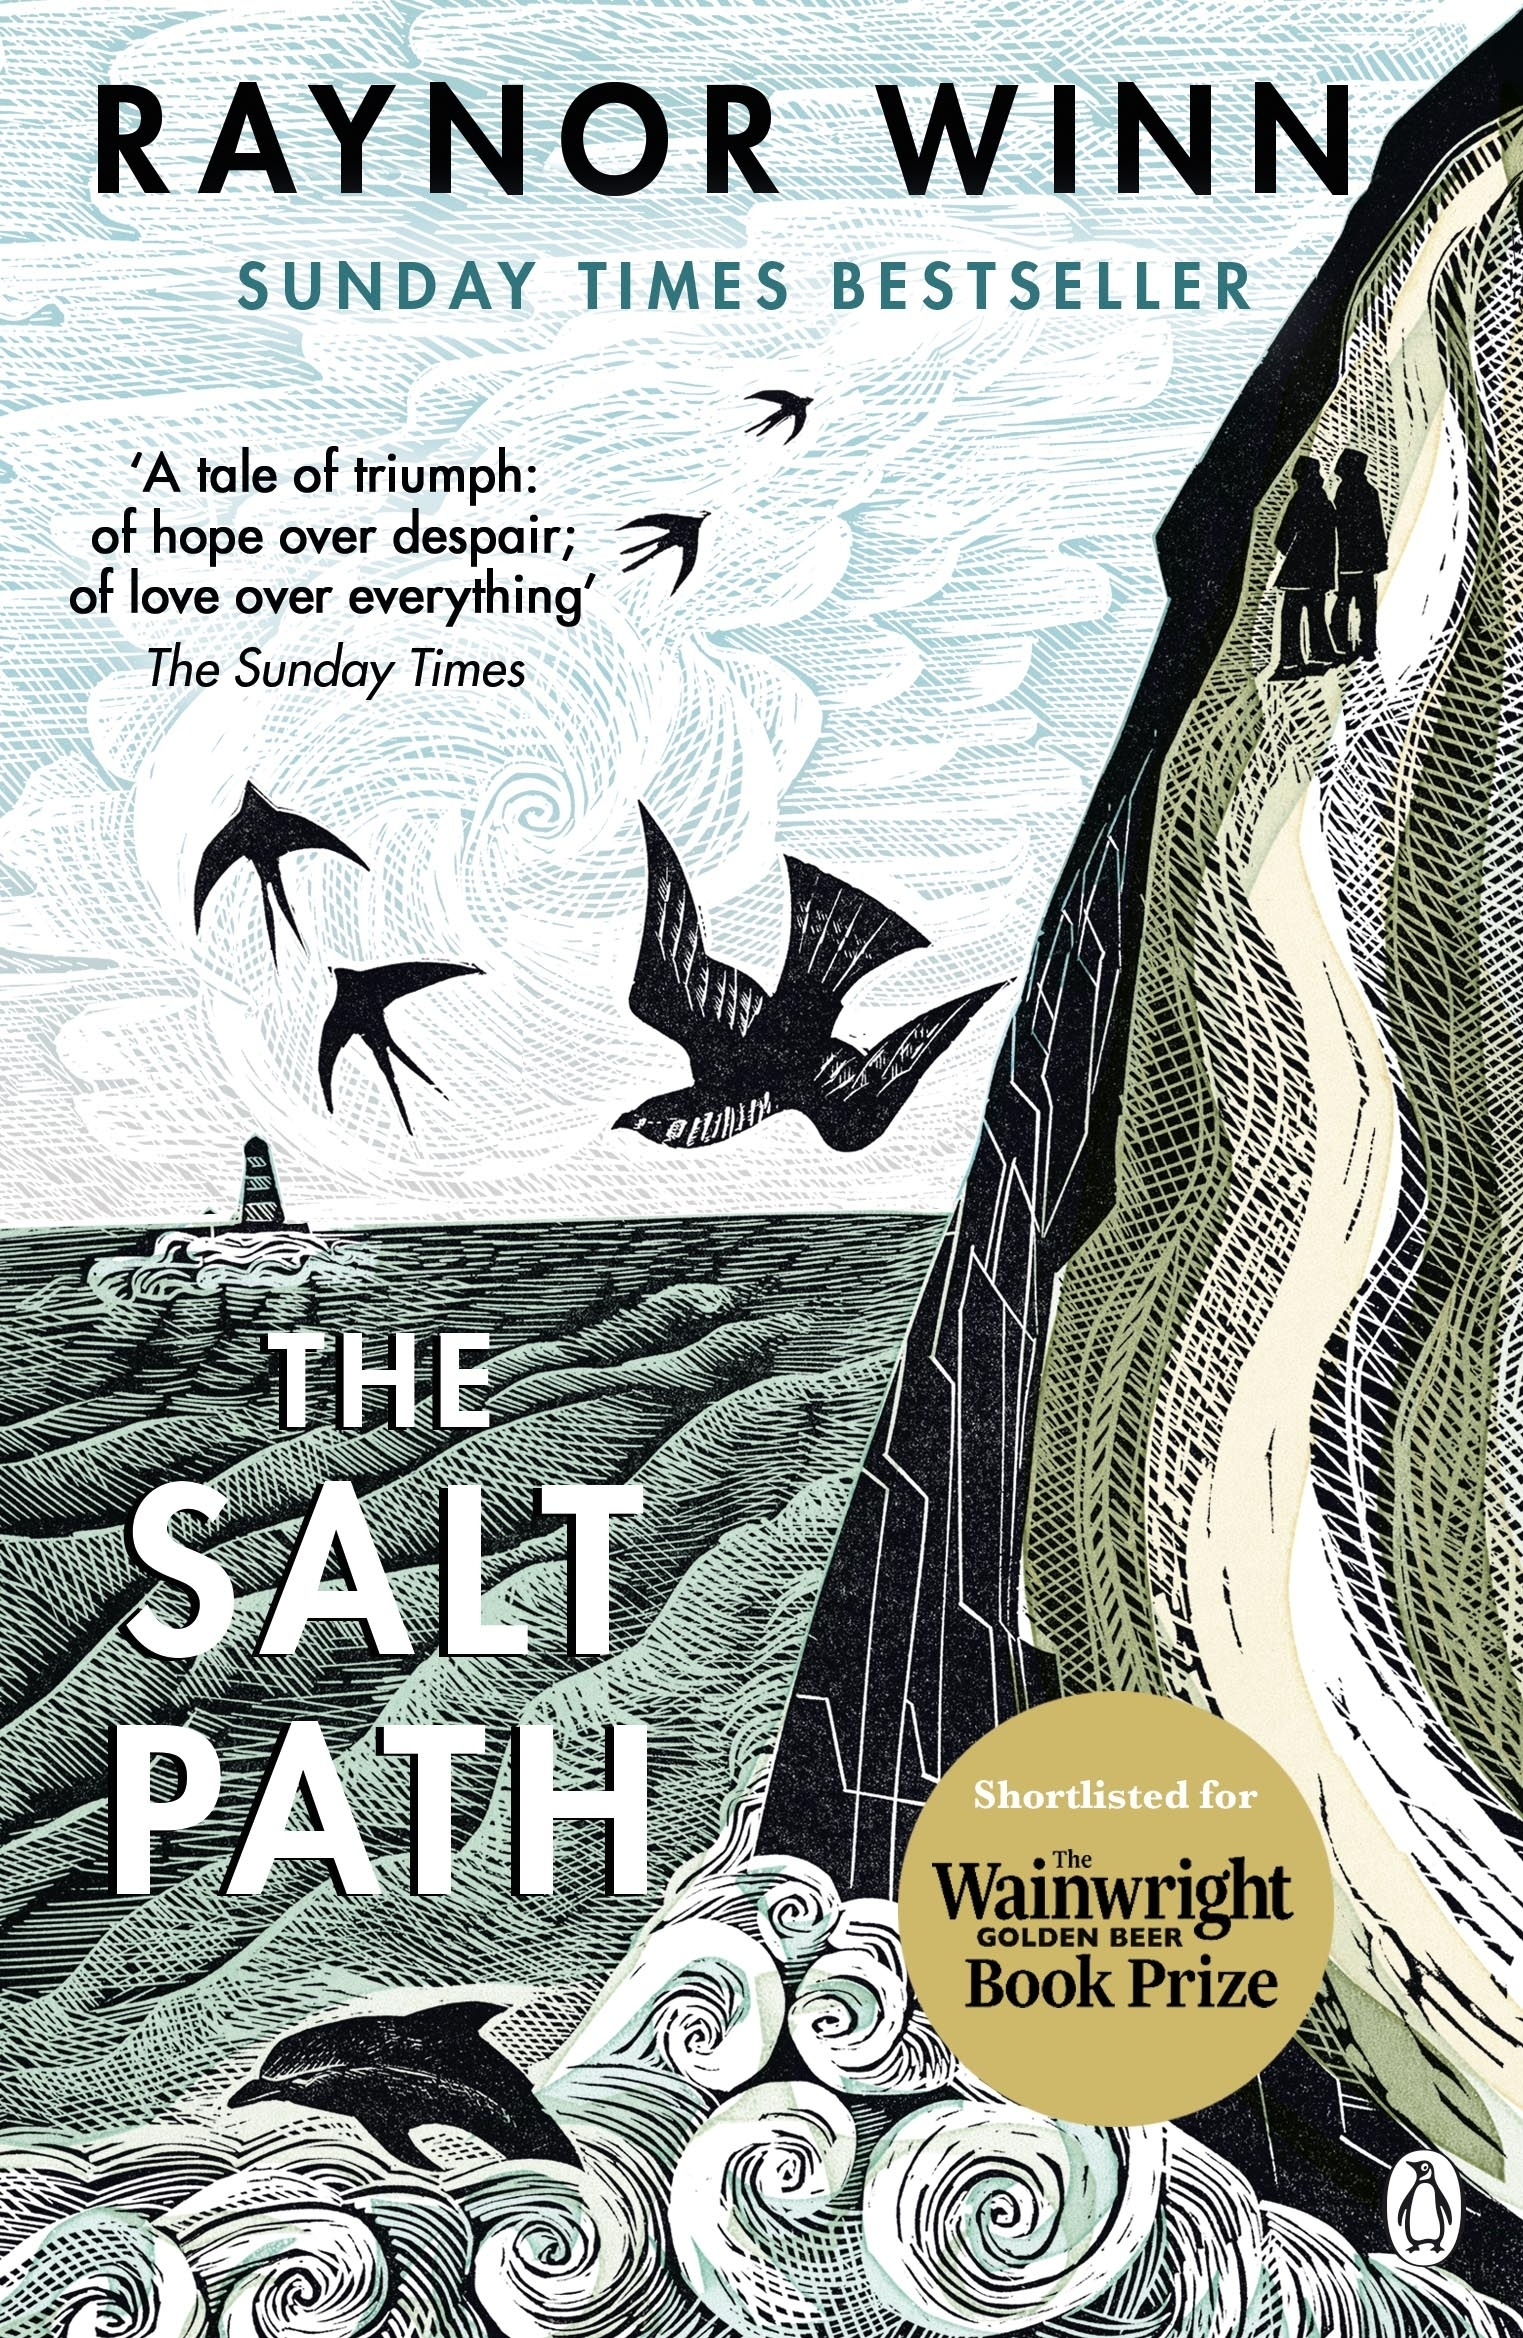 The Salt Path: The uplifting true story. A Sunday Times Bestseller. Now long listed for The Wainwright Prize